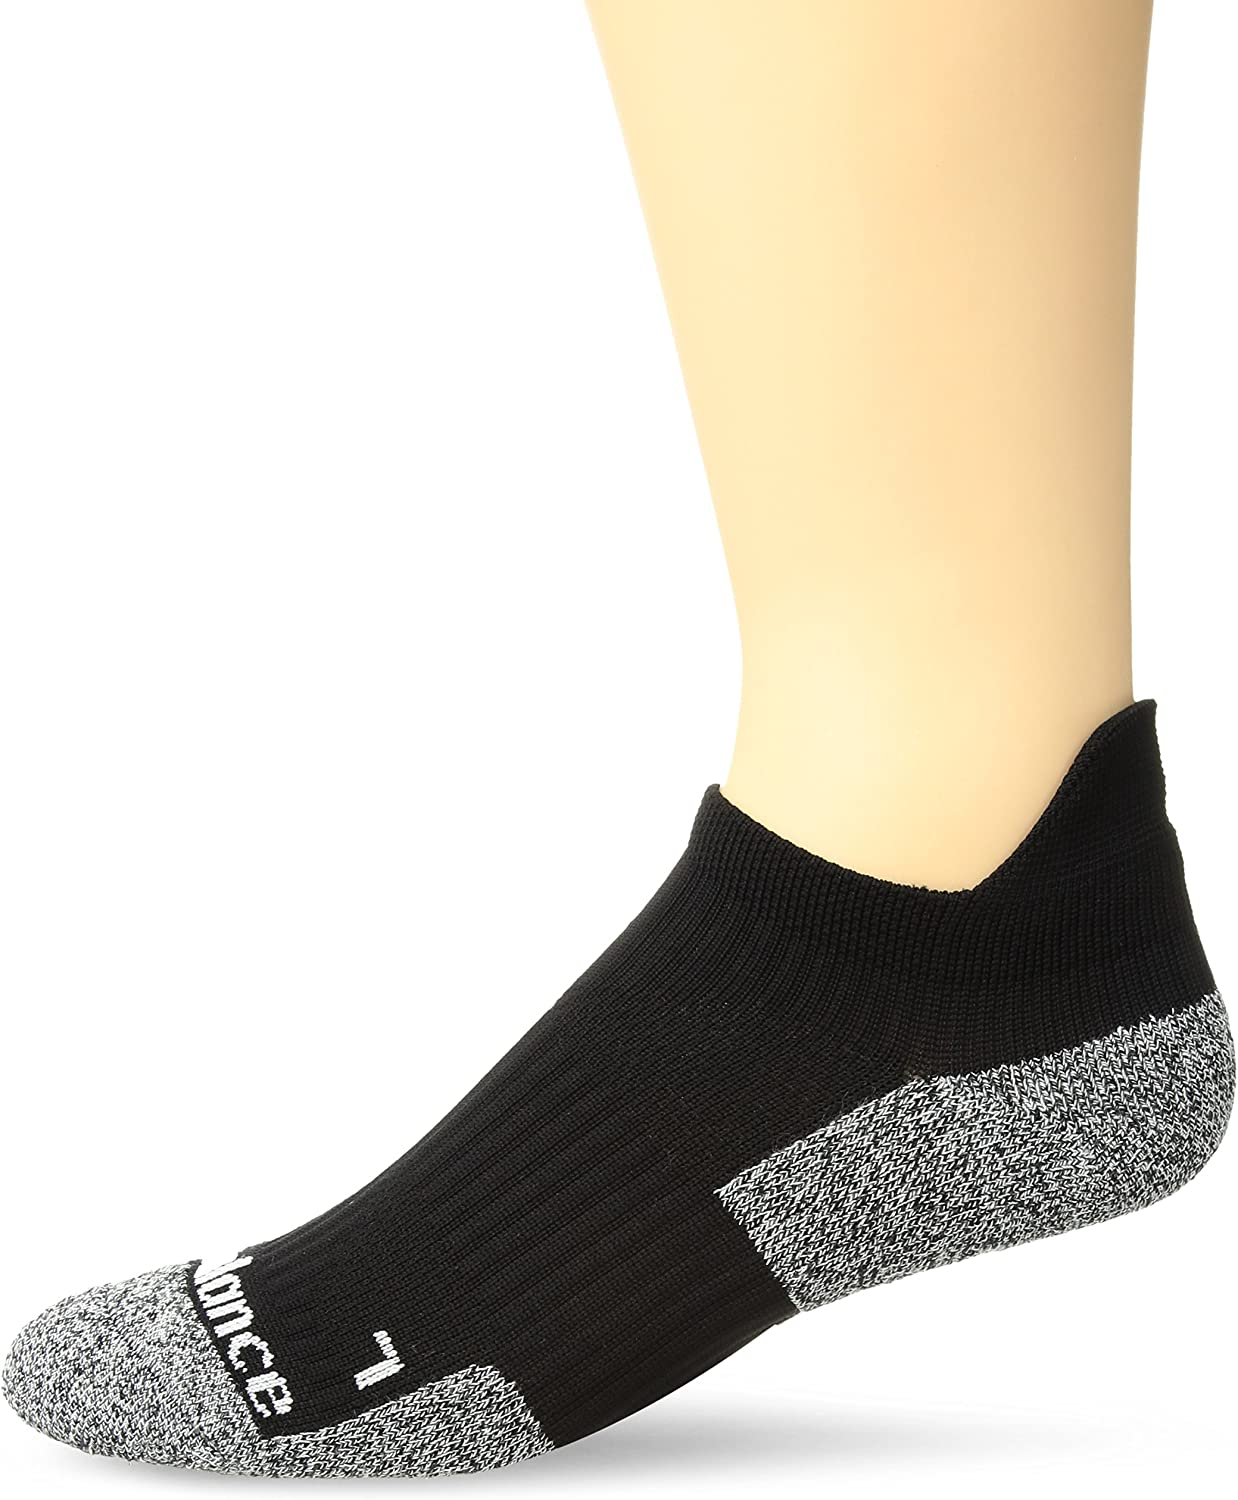 New Balance Cushioned Running No Show Tab Socks (1ペア) L